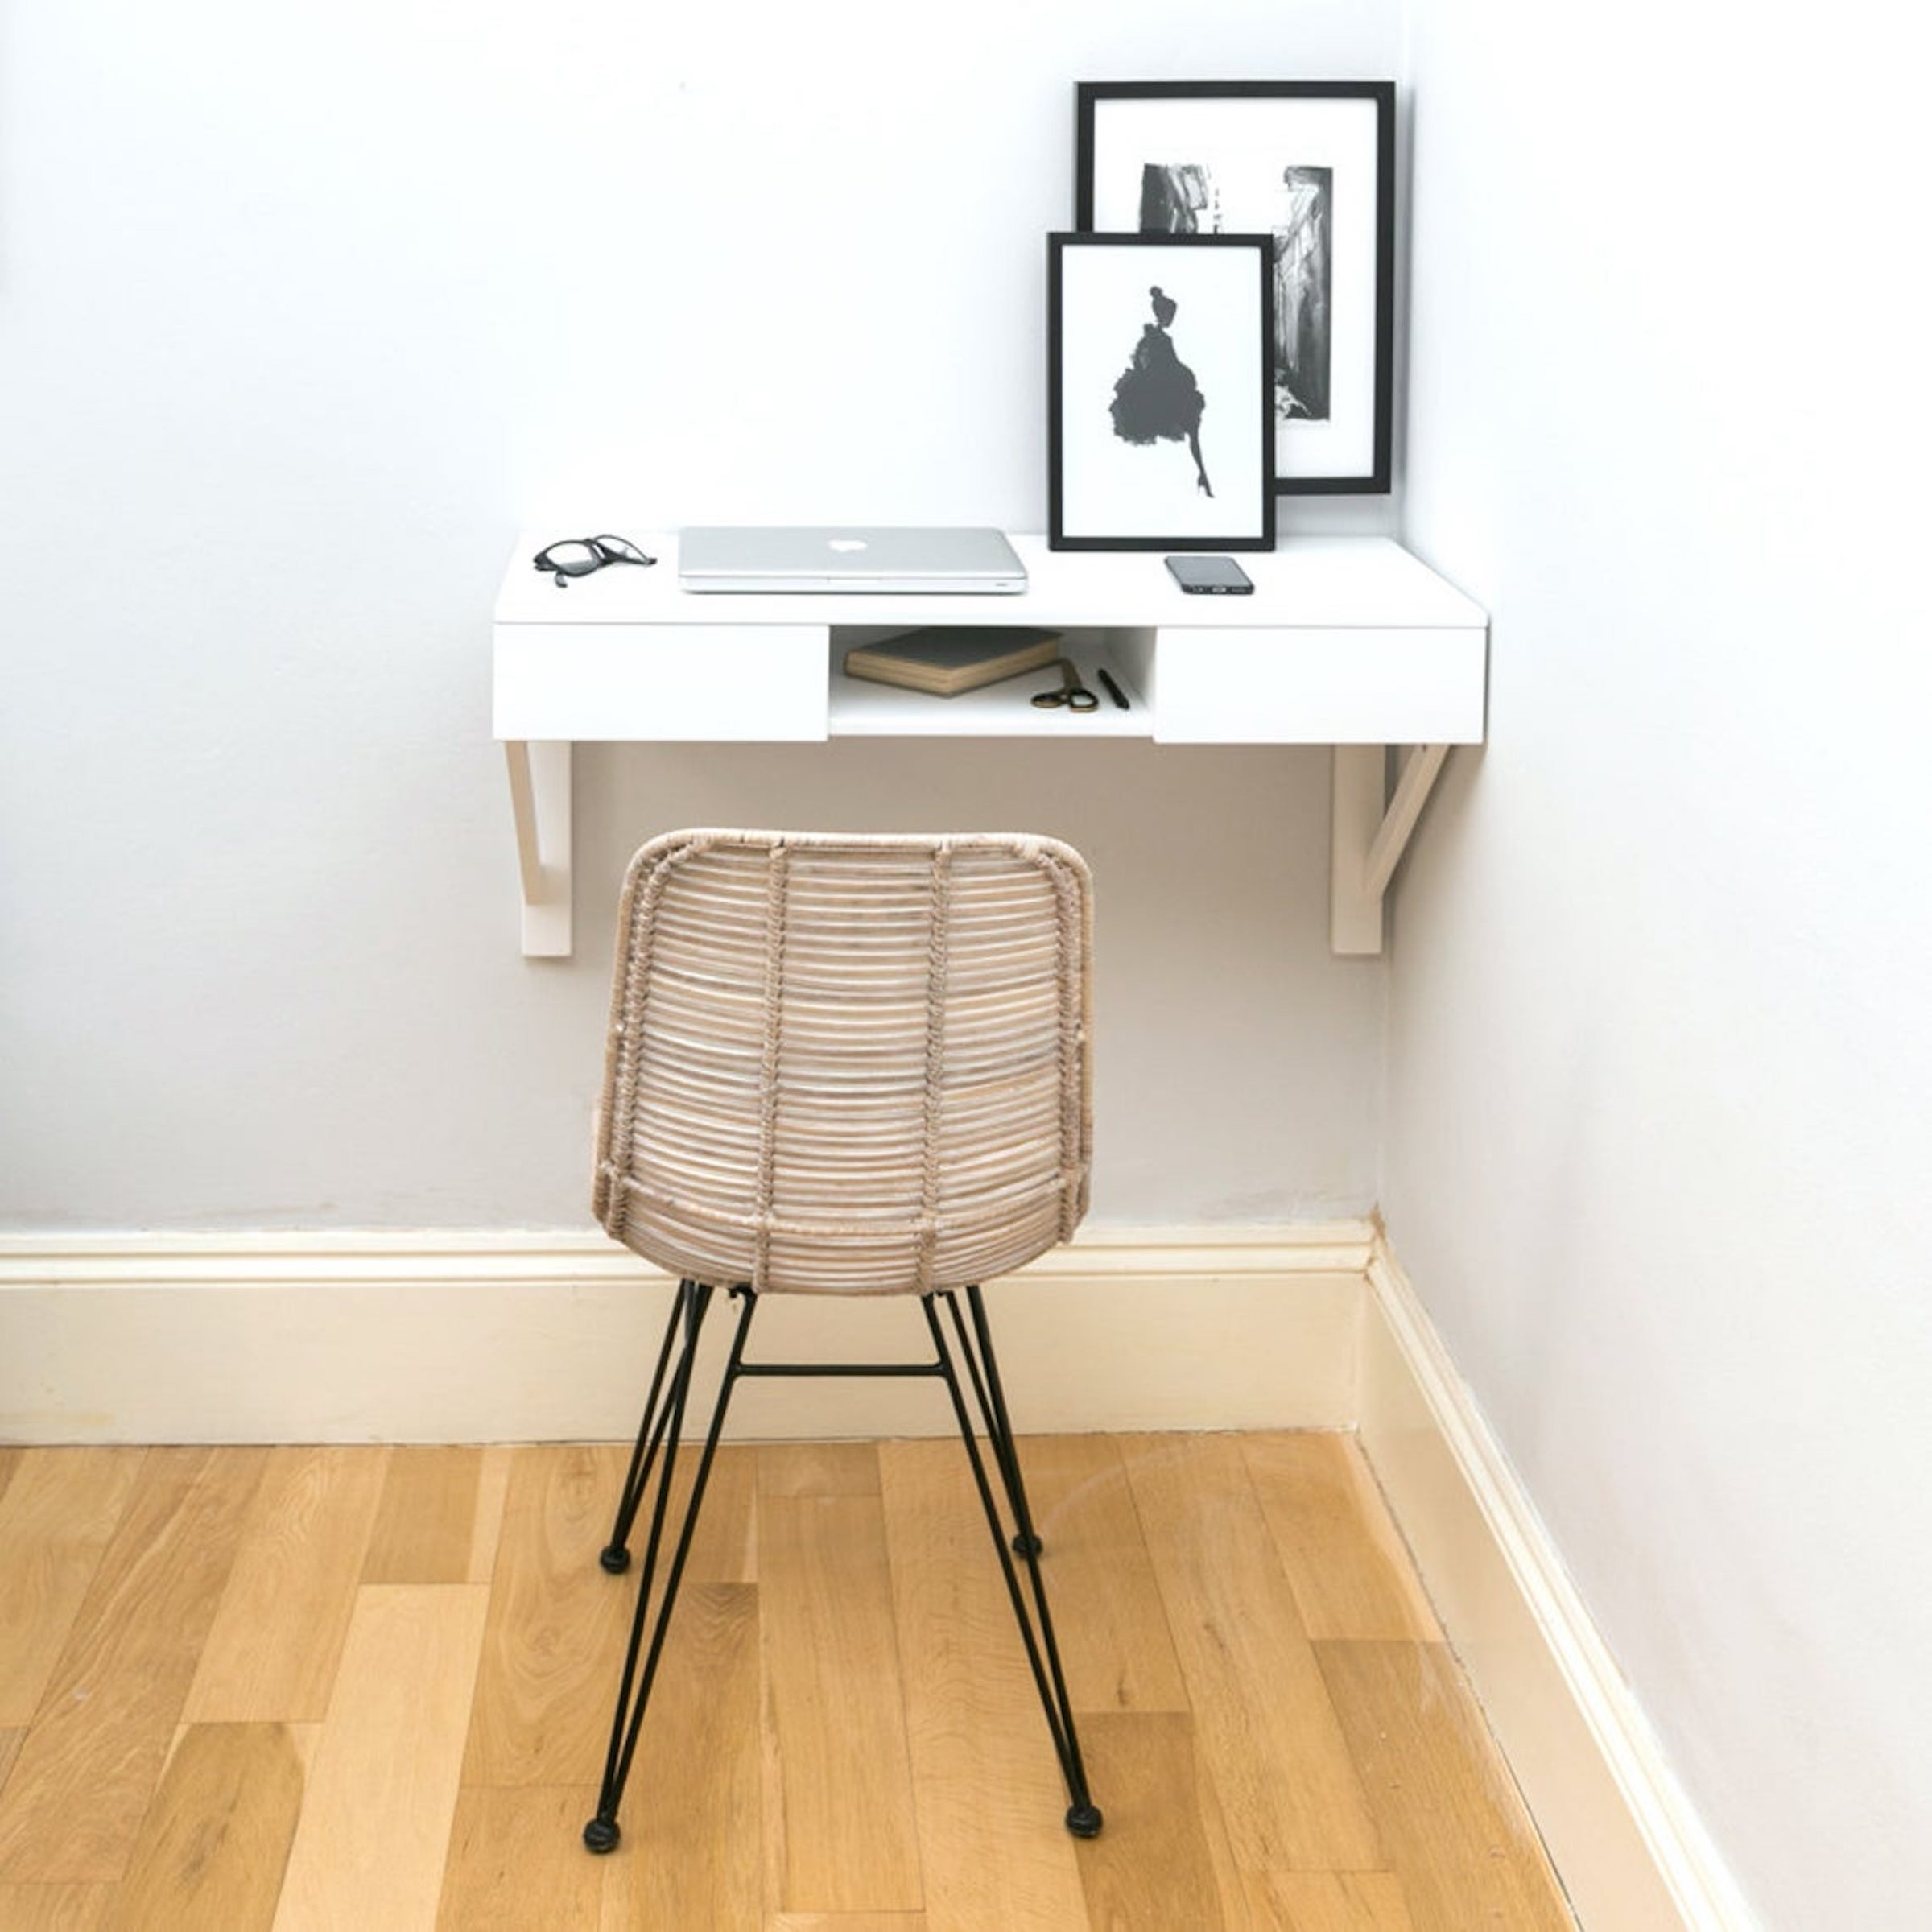 Image of: Best Desks For Small Living Spaces Homes 2020